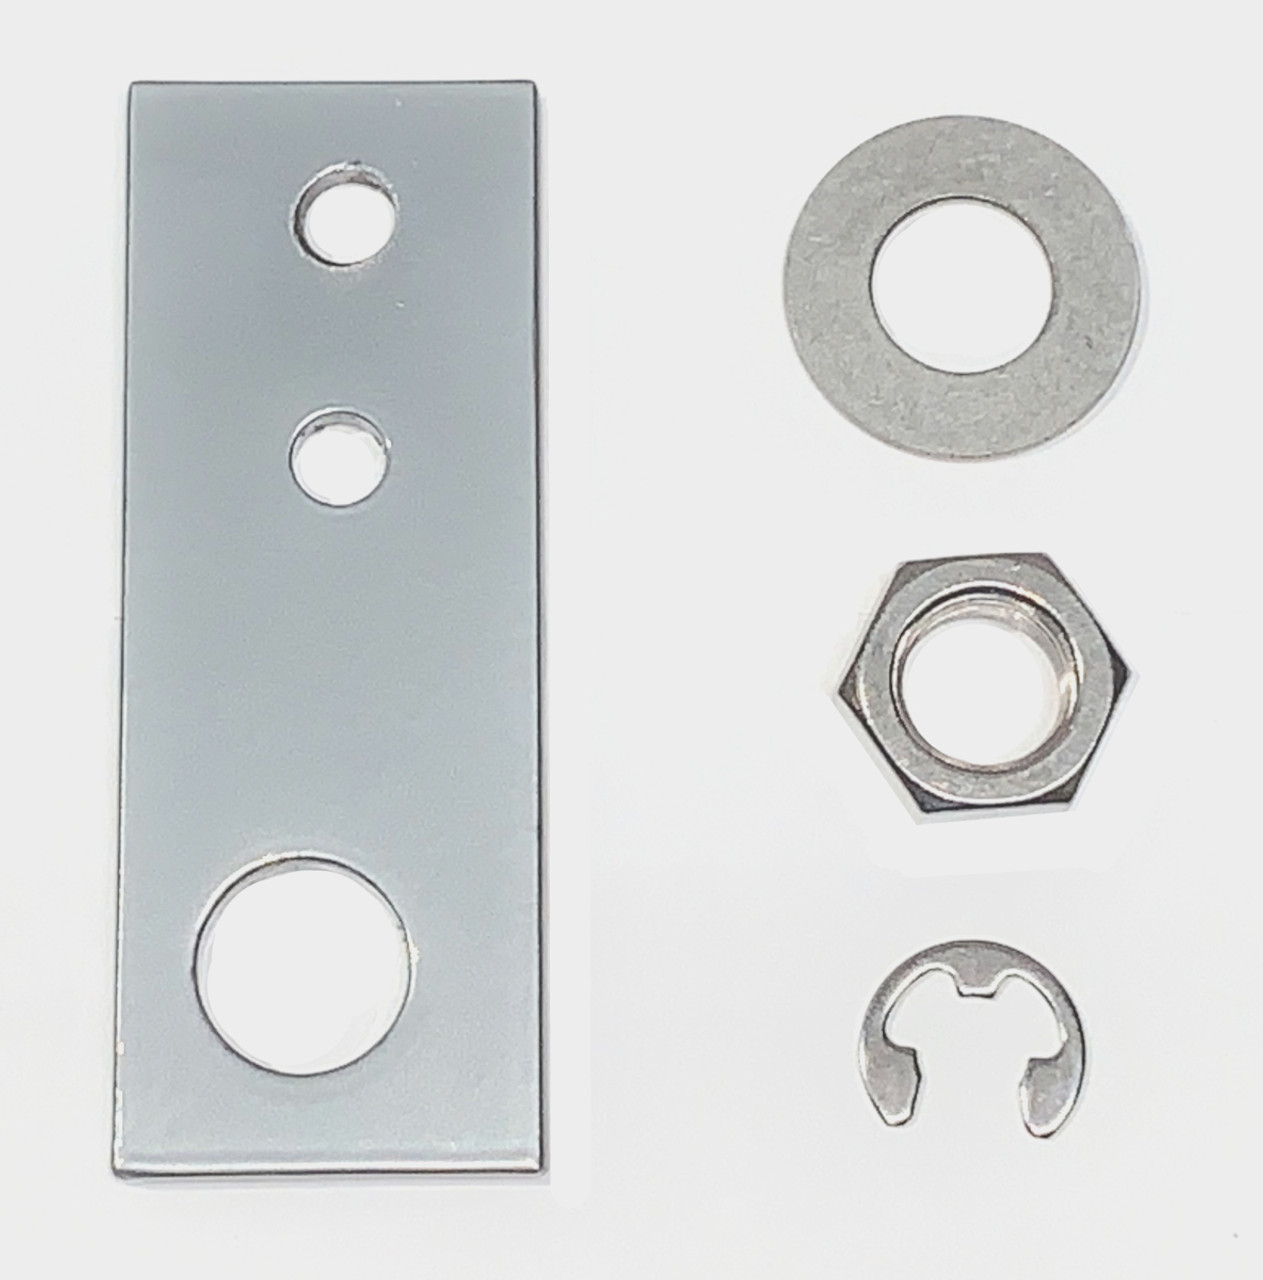 J5353415---YOU WILL RECEIVE 2 OF EACH PART